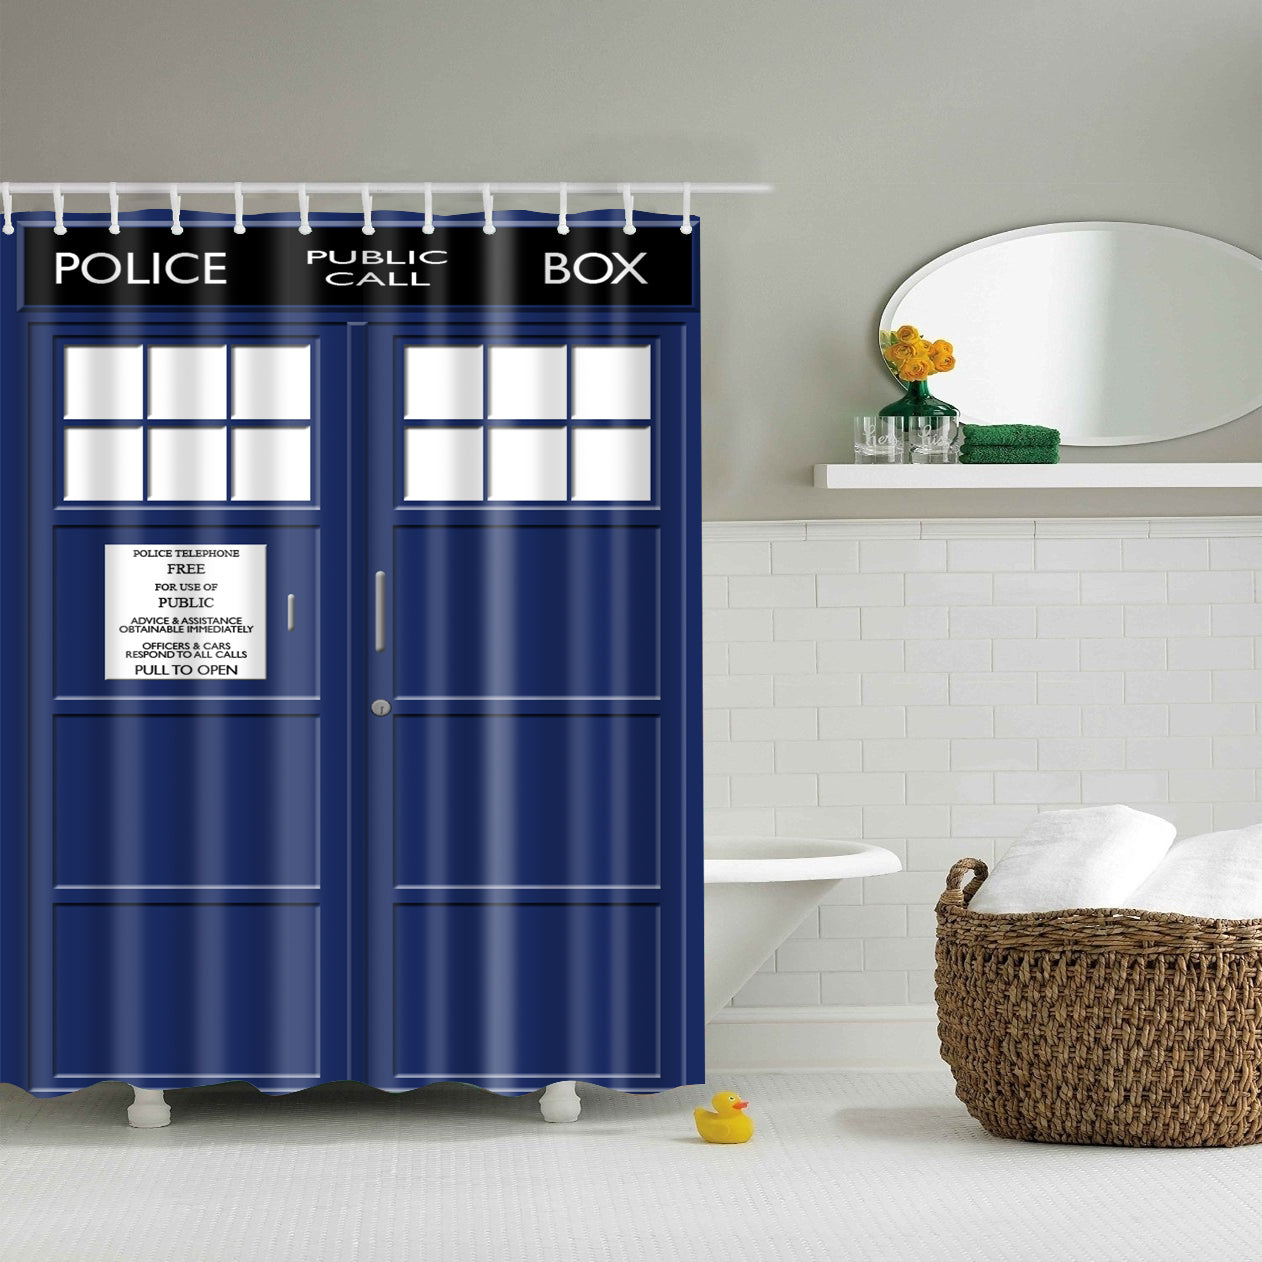 Doctor Who Tardis Police Box Shower Curtain | GoJeek